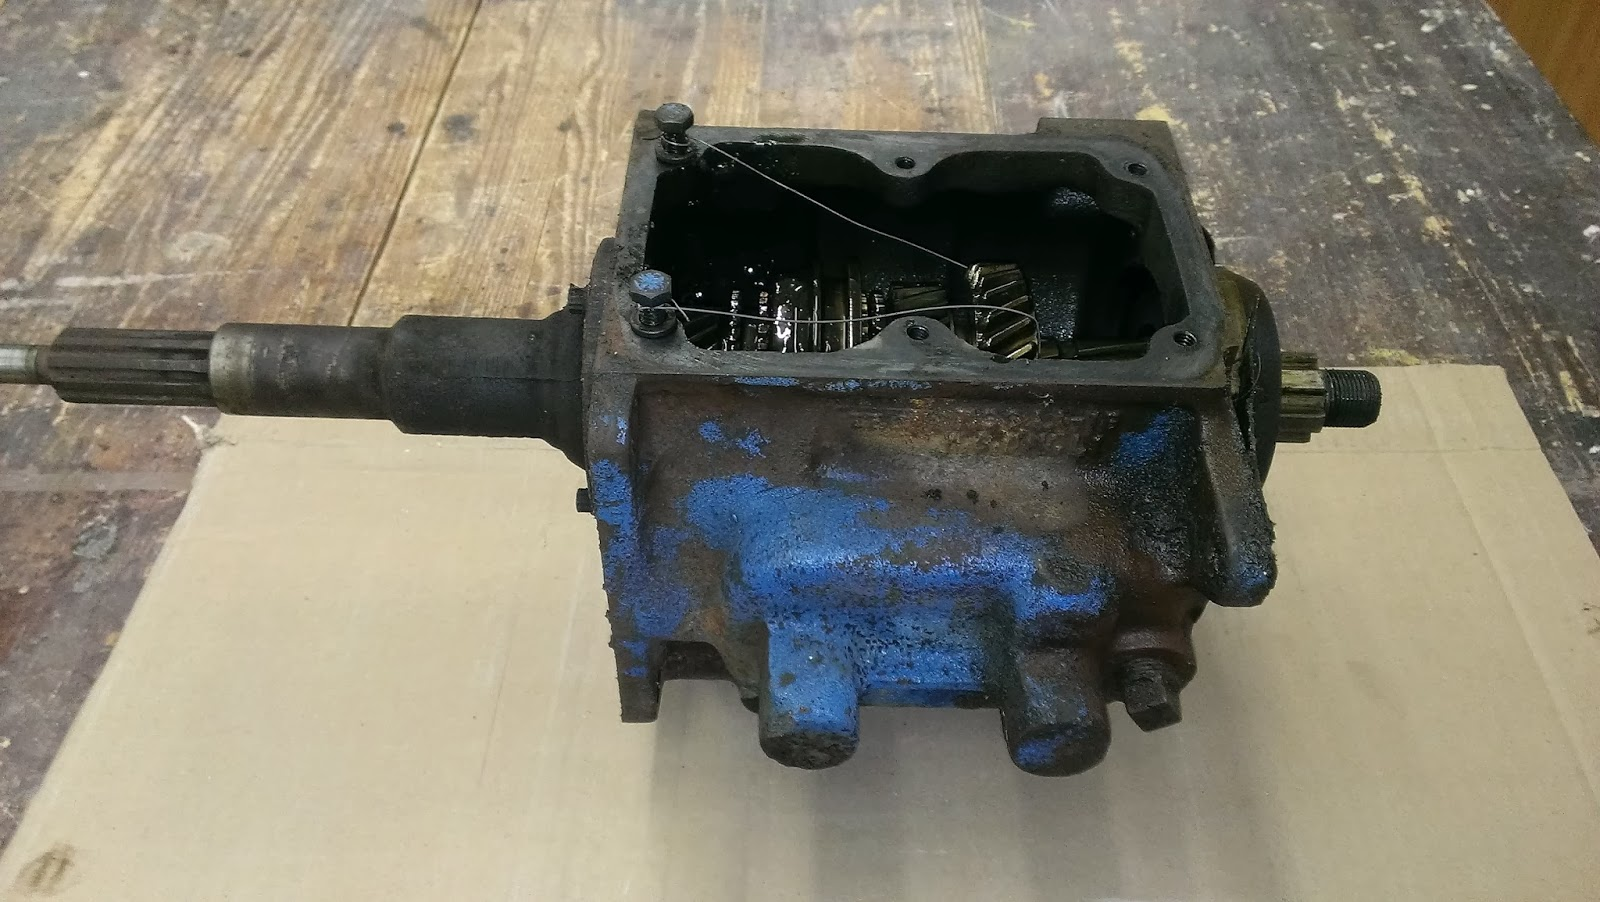 medium resolution of transfer case and pto ready to take apart will do that after transmission